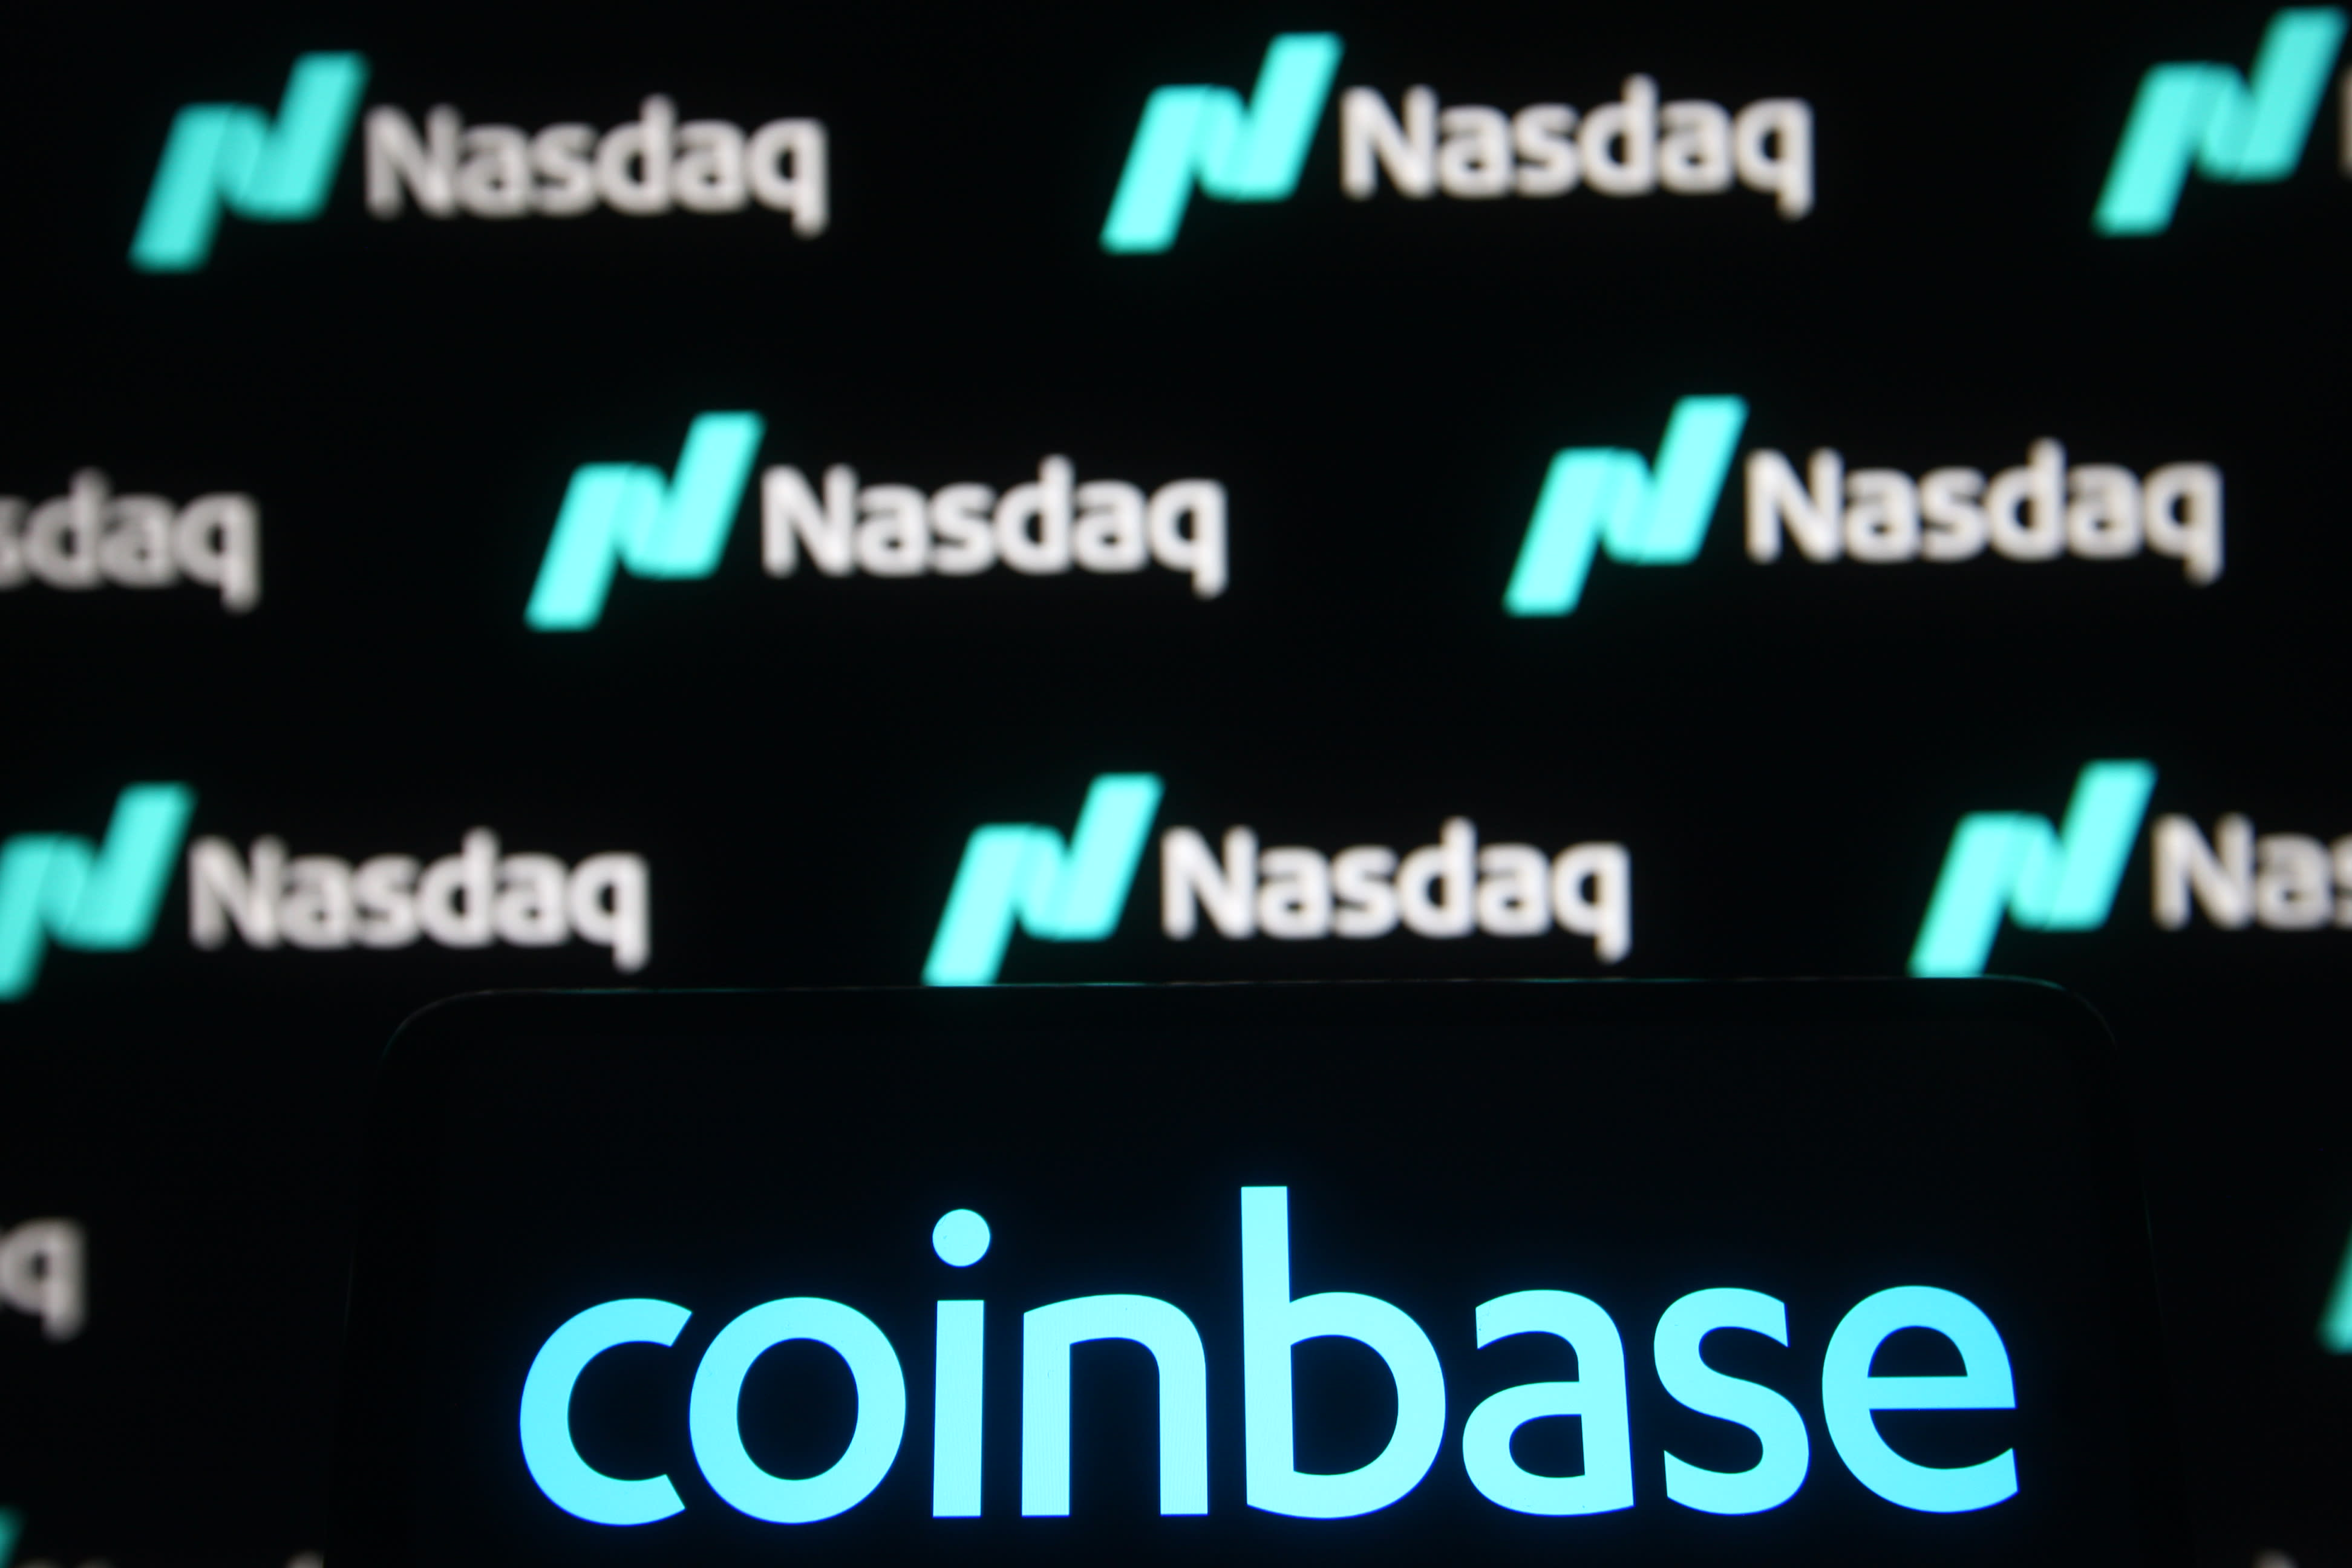 Coinbase indicated to open on Nasdaq at about $340 per share, up from $250 reference price